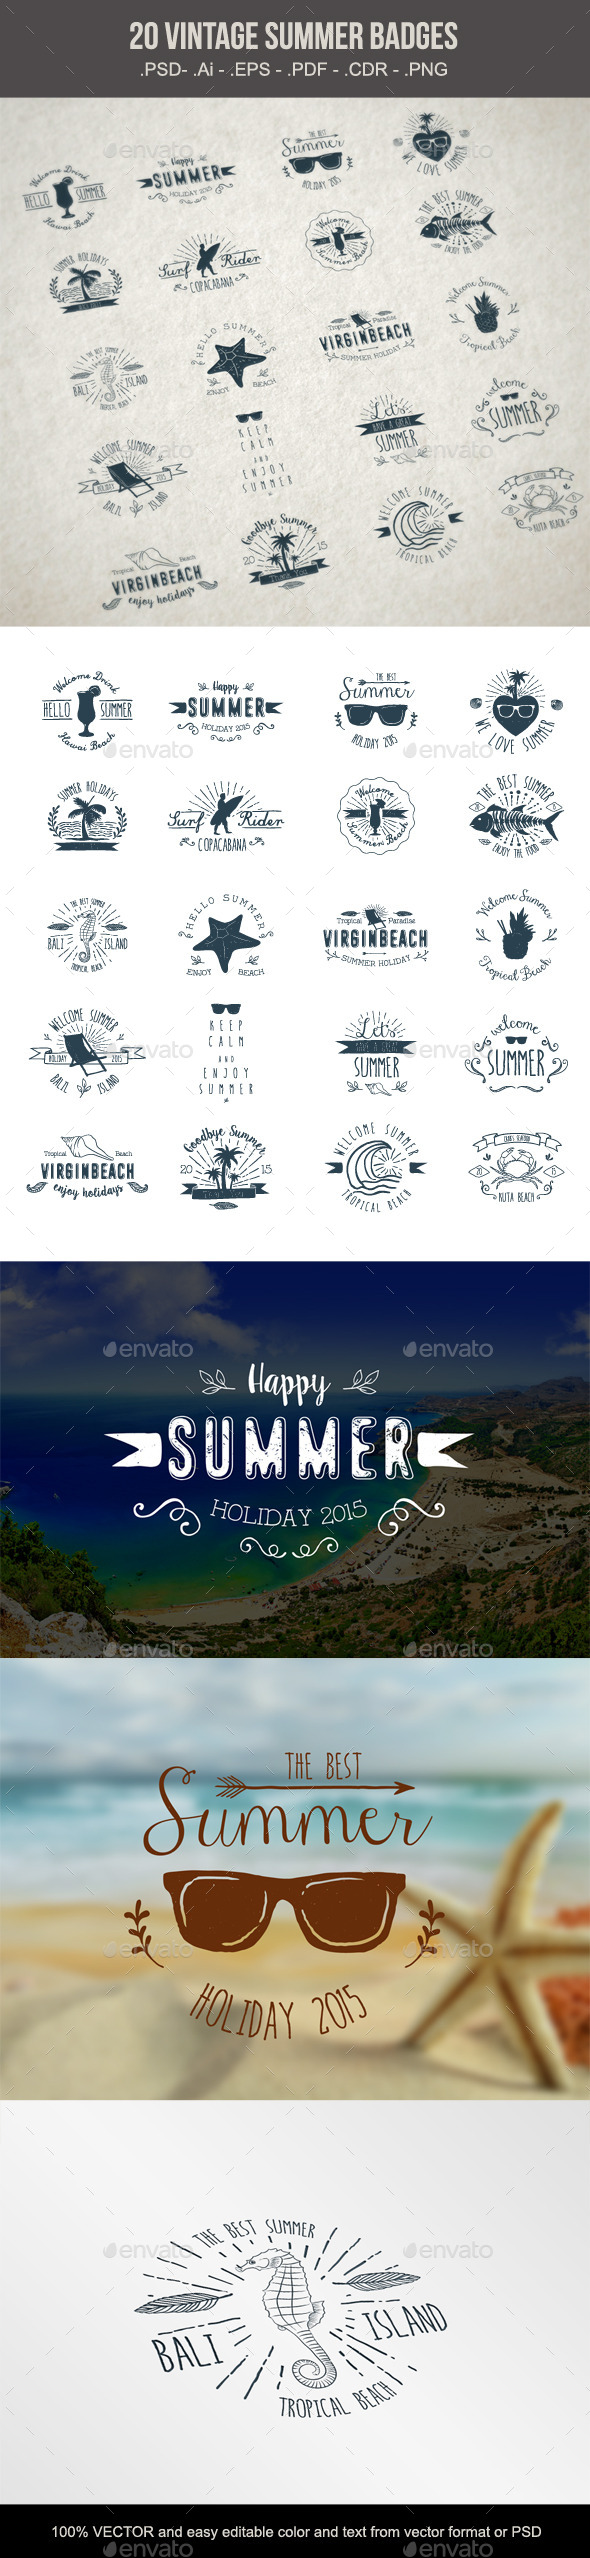 20 Summer Badges - Retro Technology